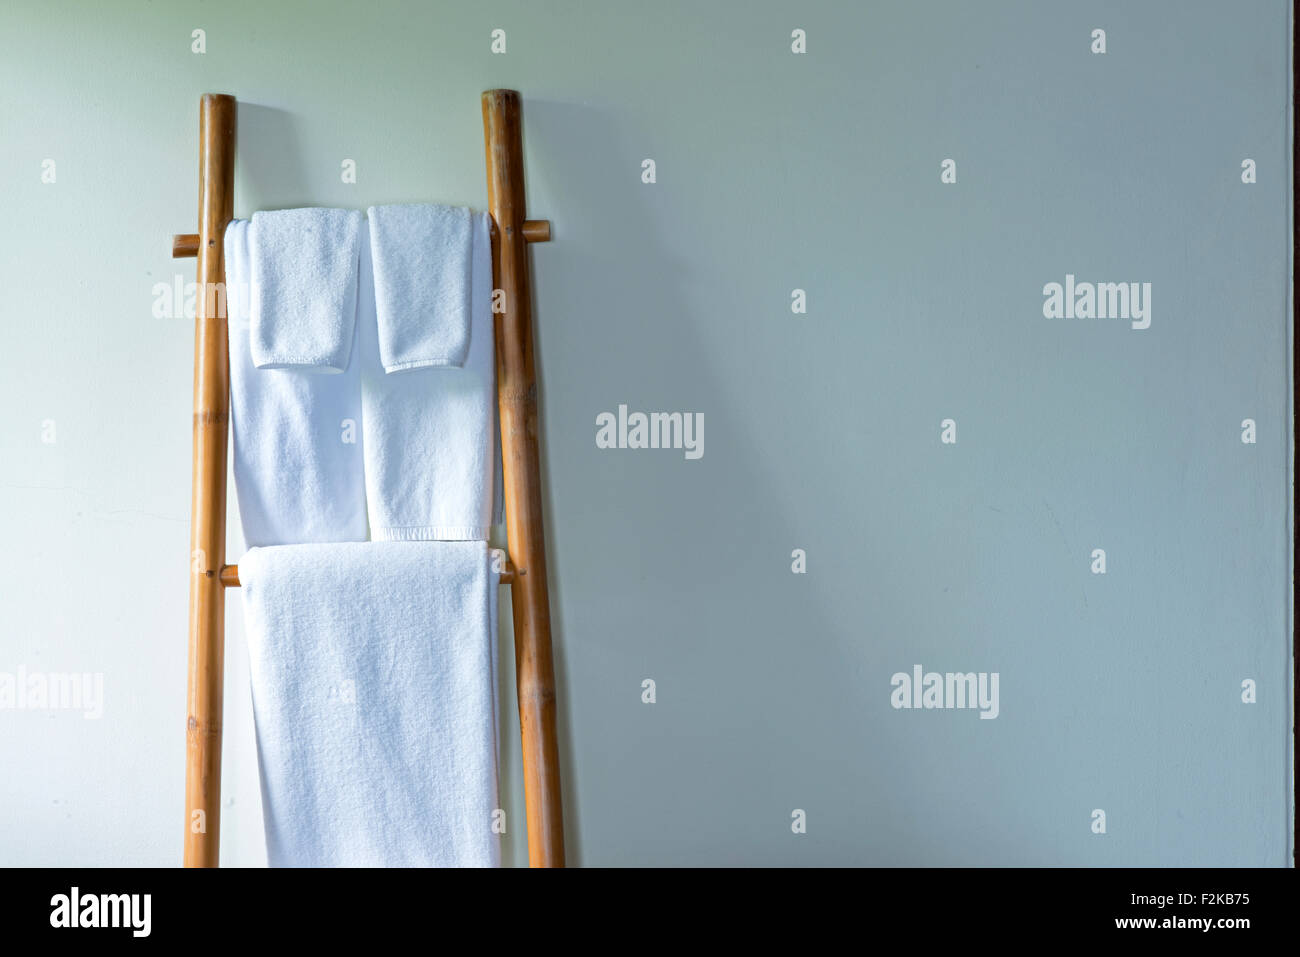 Towels hanging on the bamboo hanger and ready to use - Stock Image